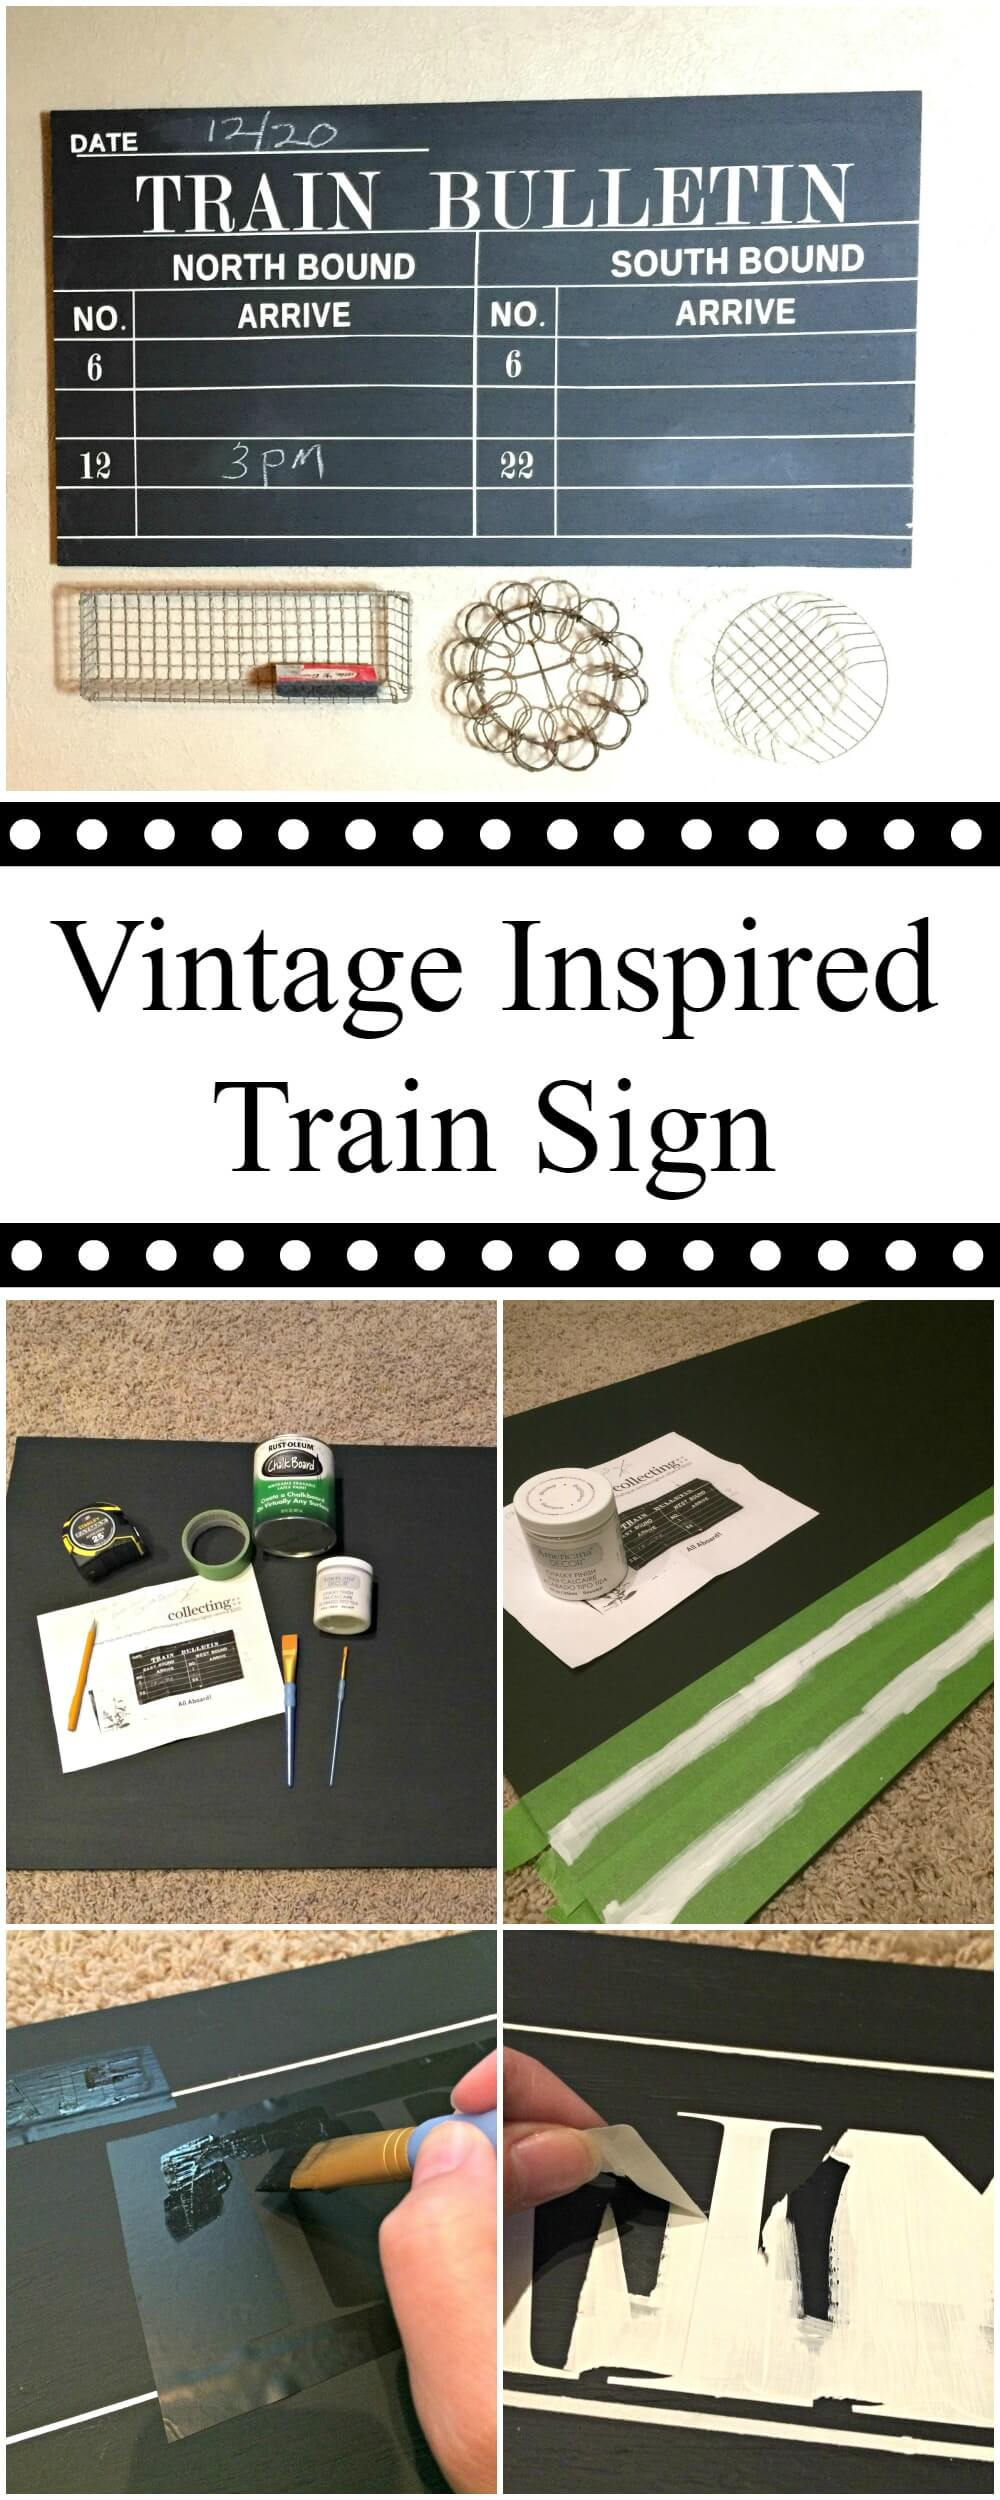 Vintage Inspired Chalkboard Train Depot Sign - step by step instructions on making your own